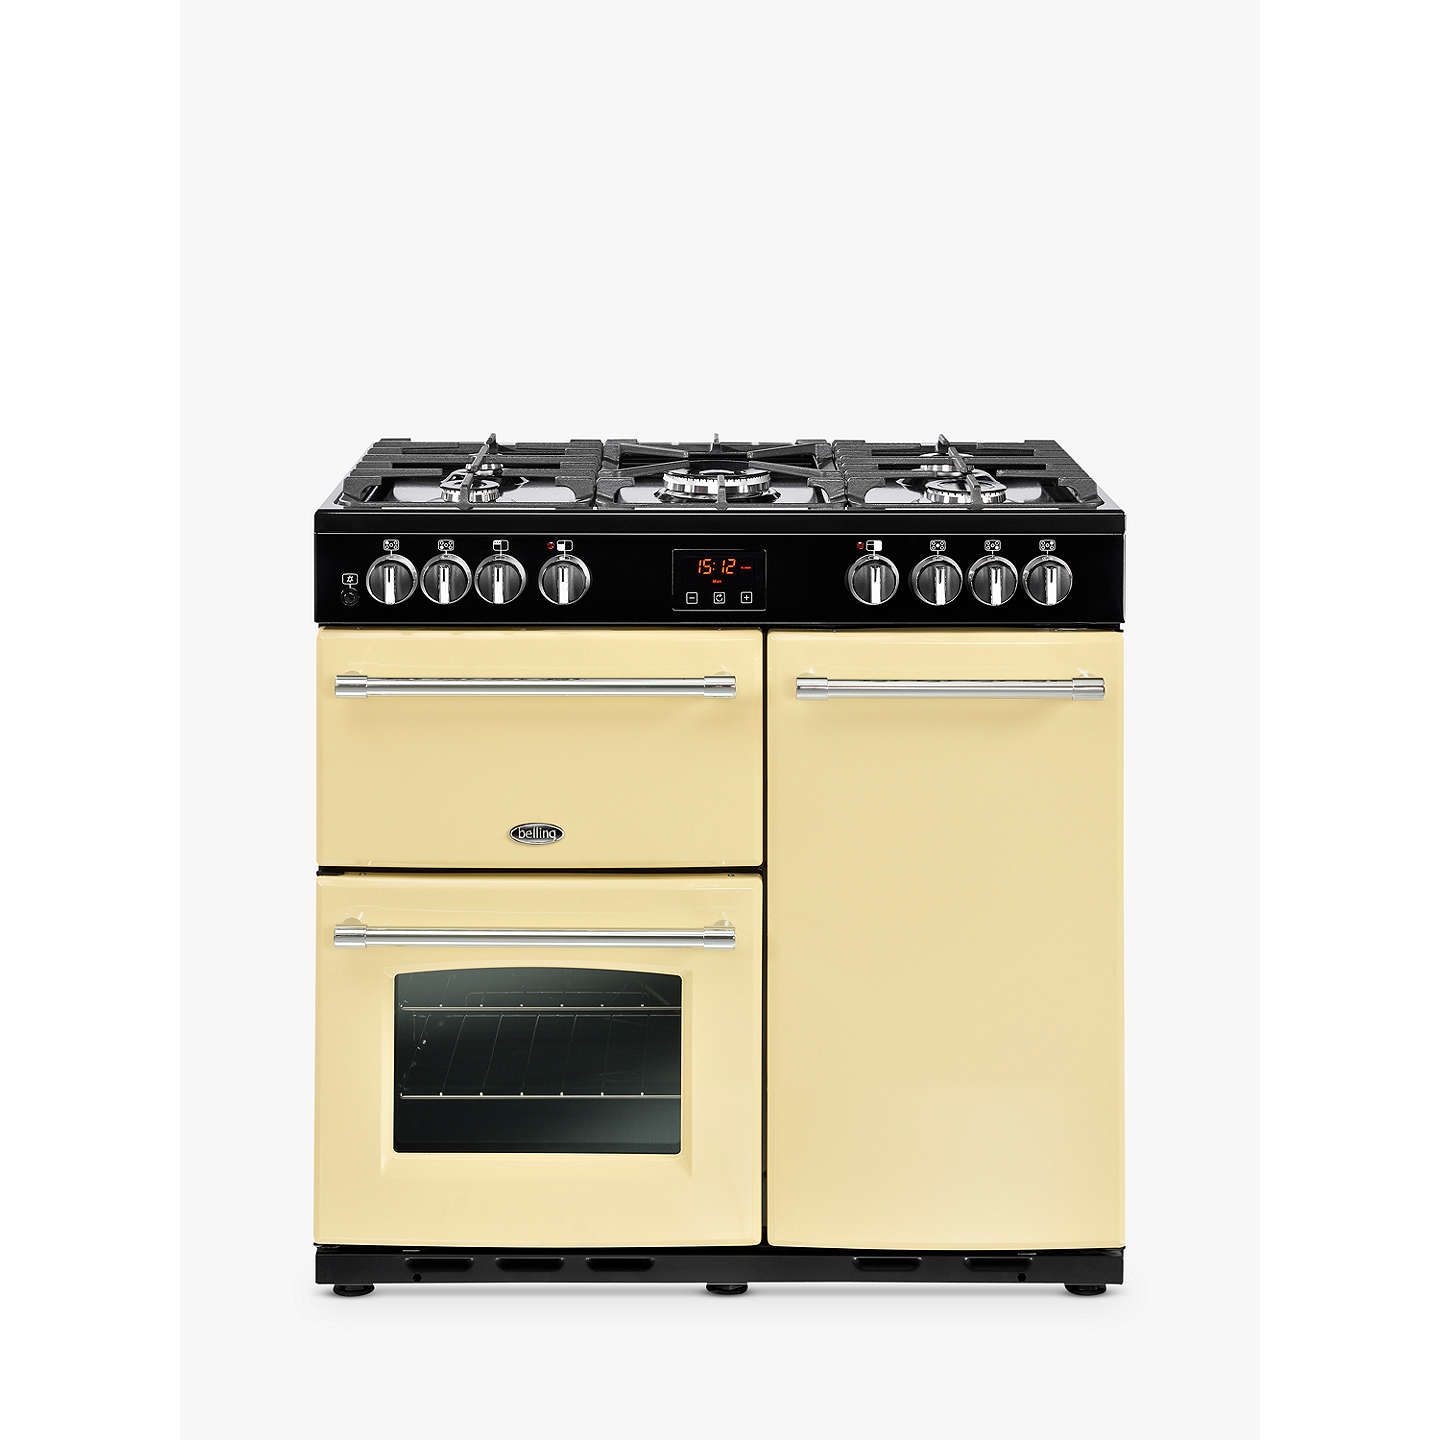 BuyBelling Farmhouse 90DFT Dual Fuel Range Cooker, Cream Online at johnlewis.com